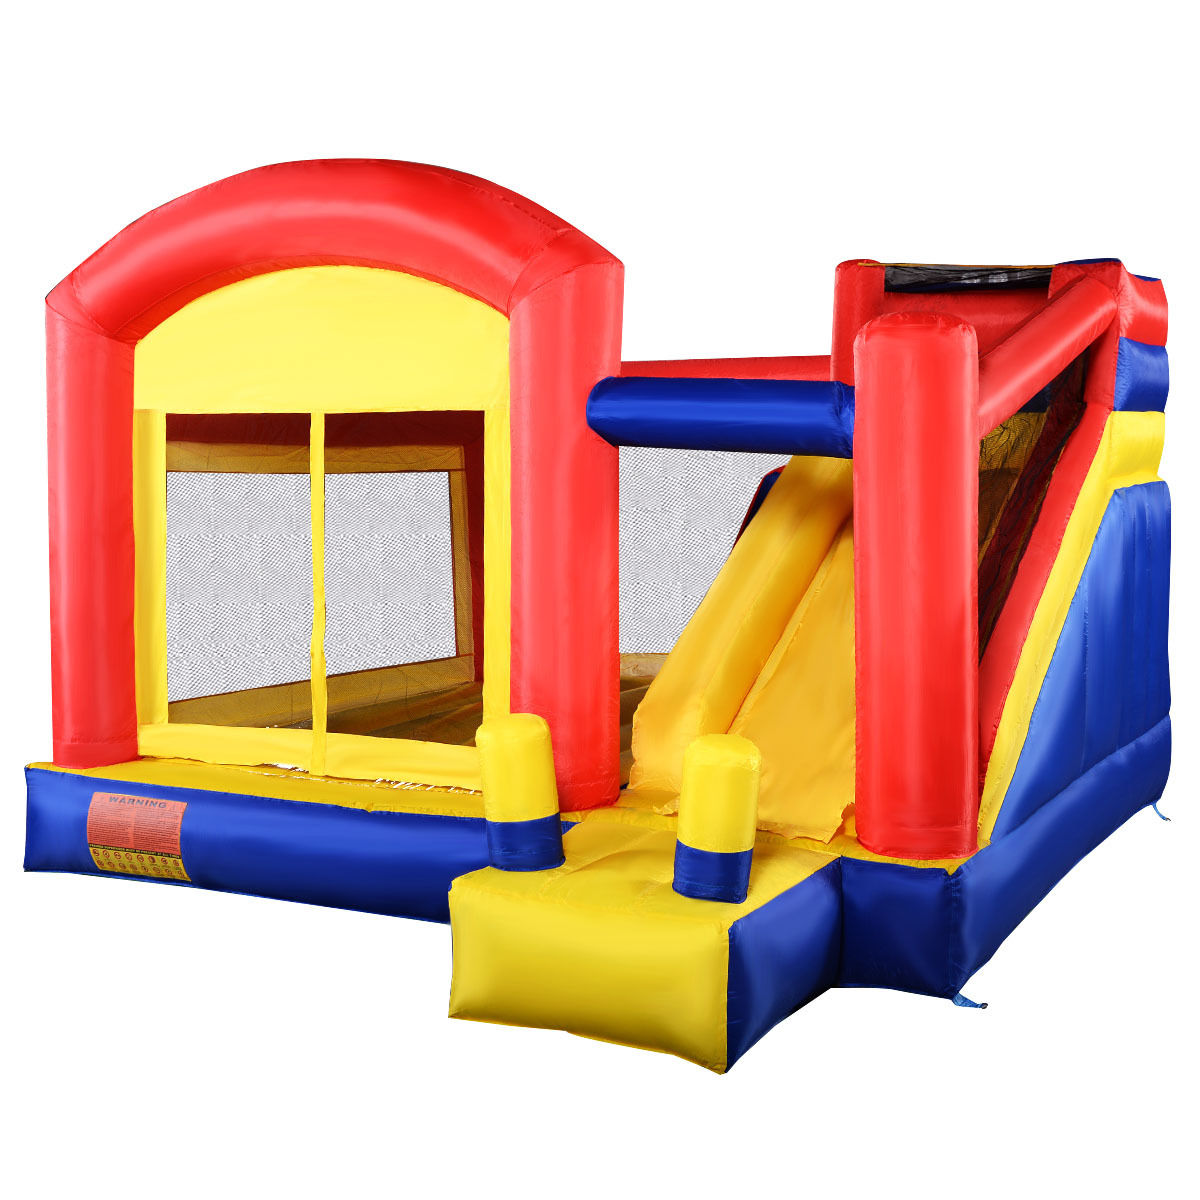 Costway New Super Slide Inflatable Bounce House Castle Moonwalk Jumper Bouncer Without Blower by Costway